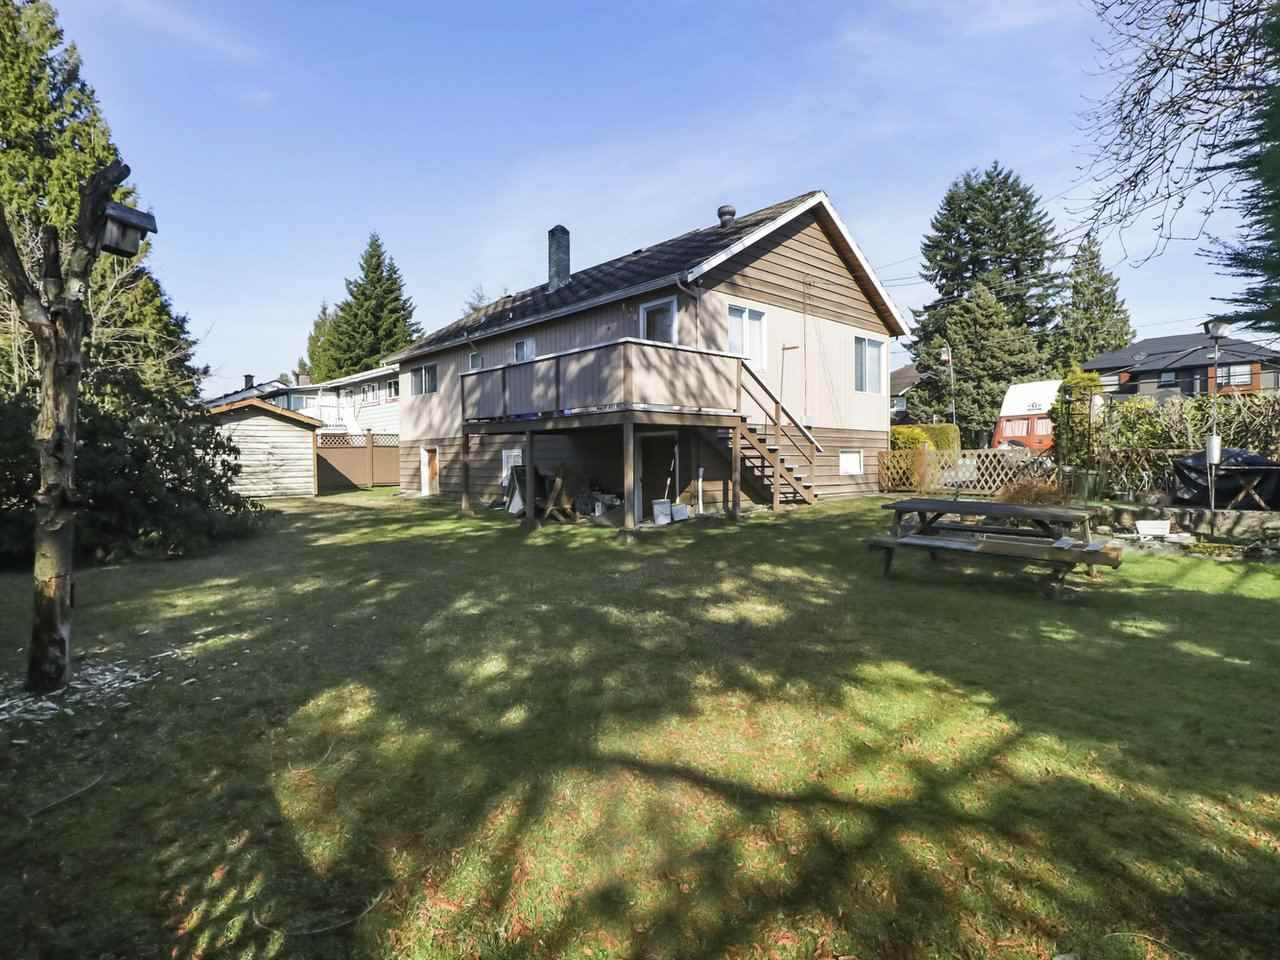 Photo 20: Photos: 730 SCHOOLHOUSE Street in Coquitlam: Central Coquitlam House for sale : MLS®# R2446516